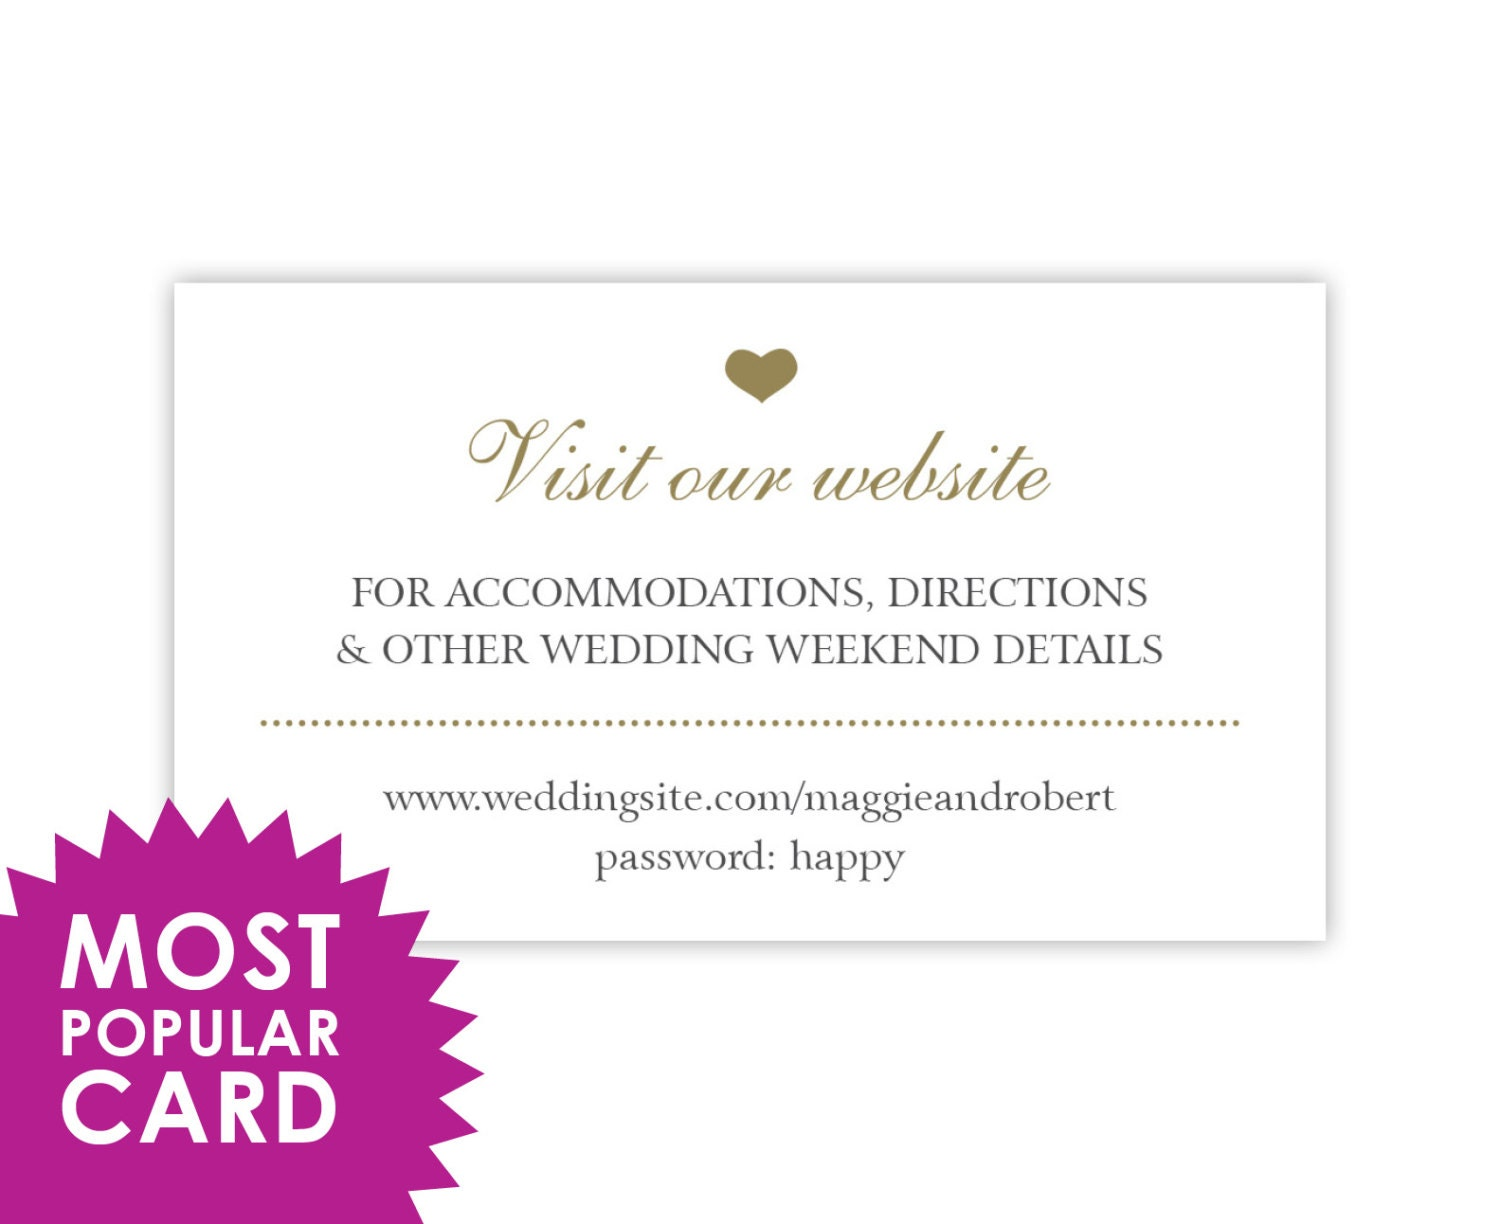 Wedding Website Cards Enclosure Cards Wedding Hashtag Cards or – Gift Registry Cards in Wedding Invitations